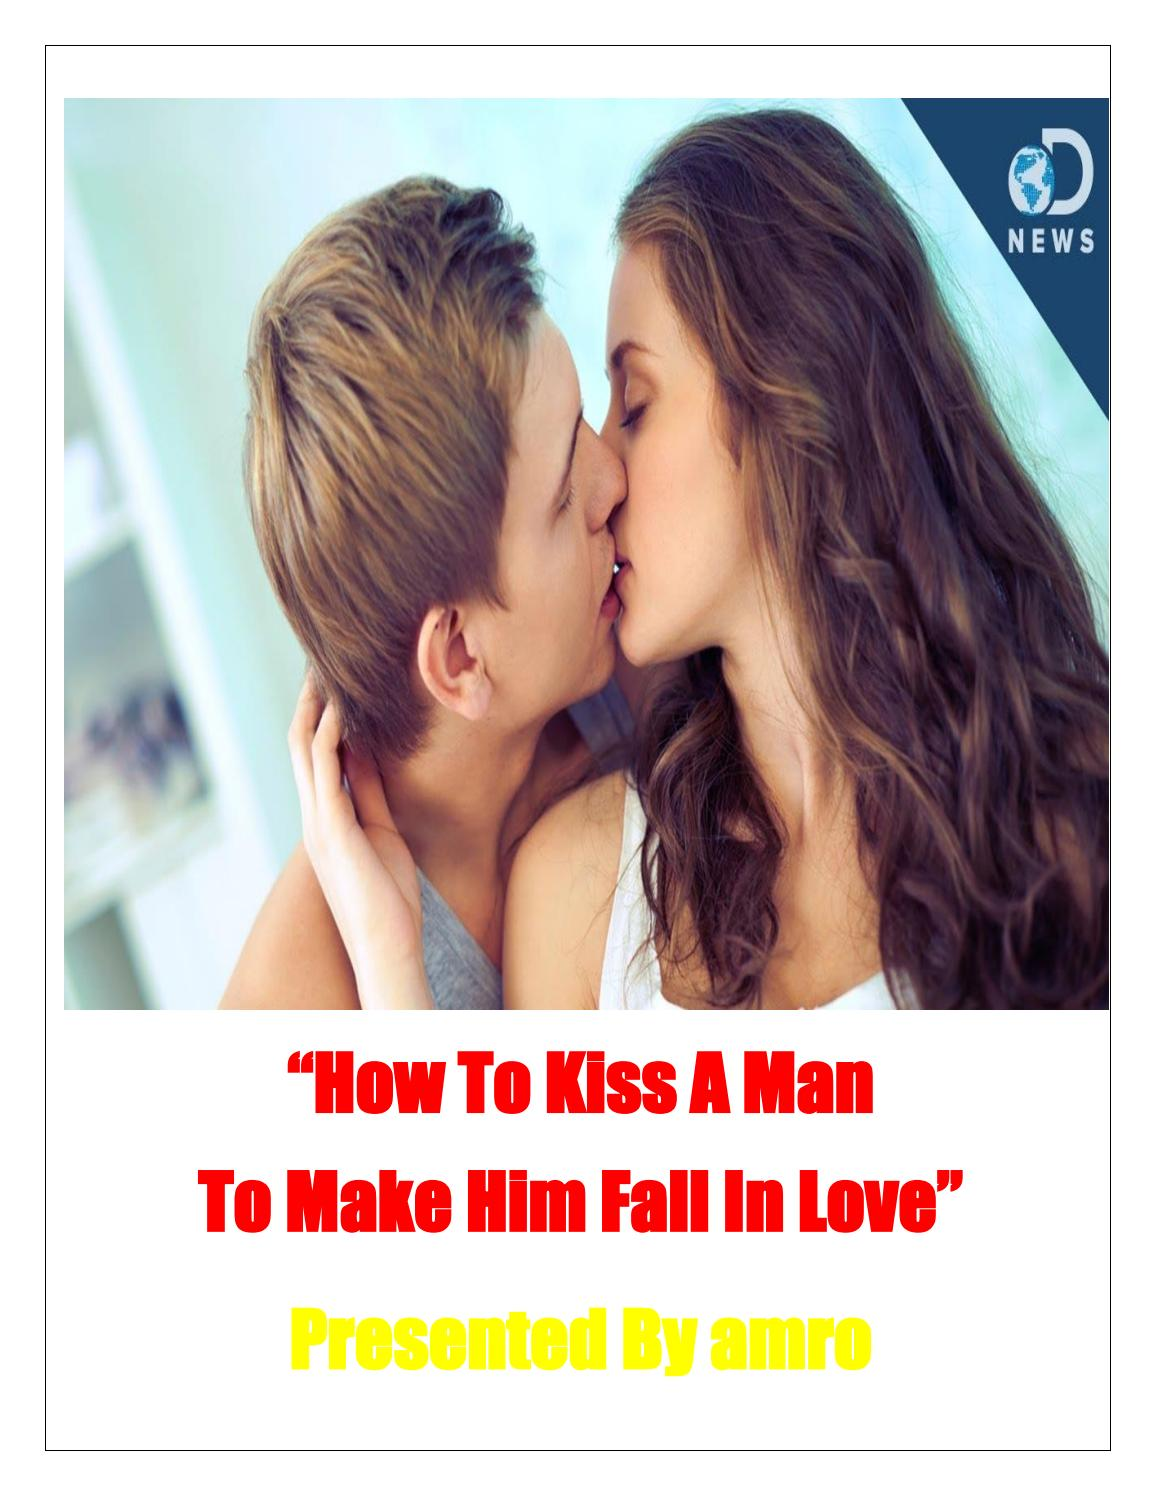 how to kiss people